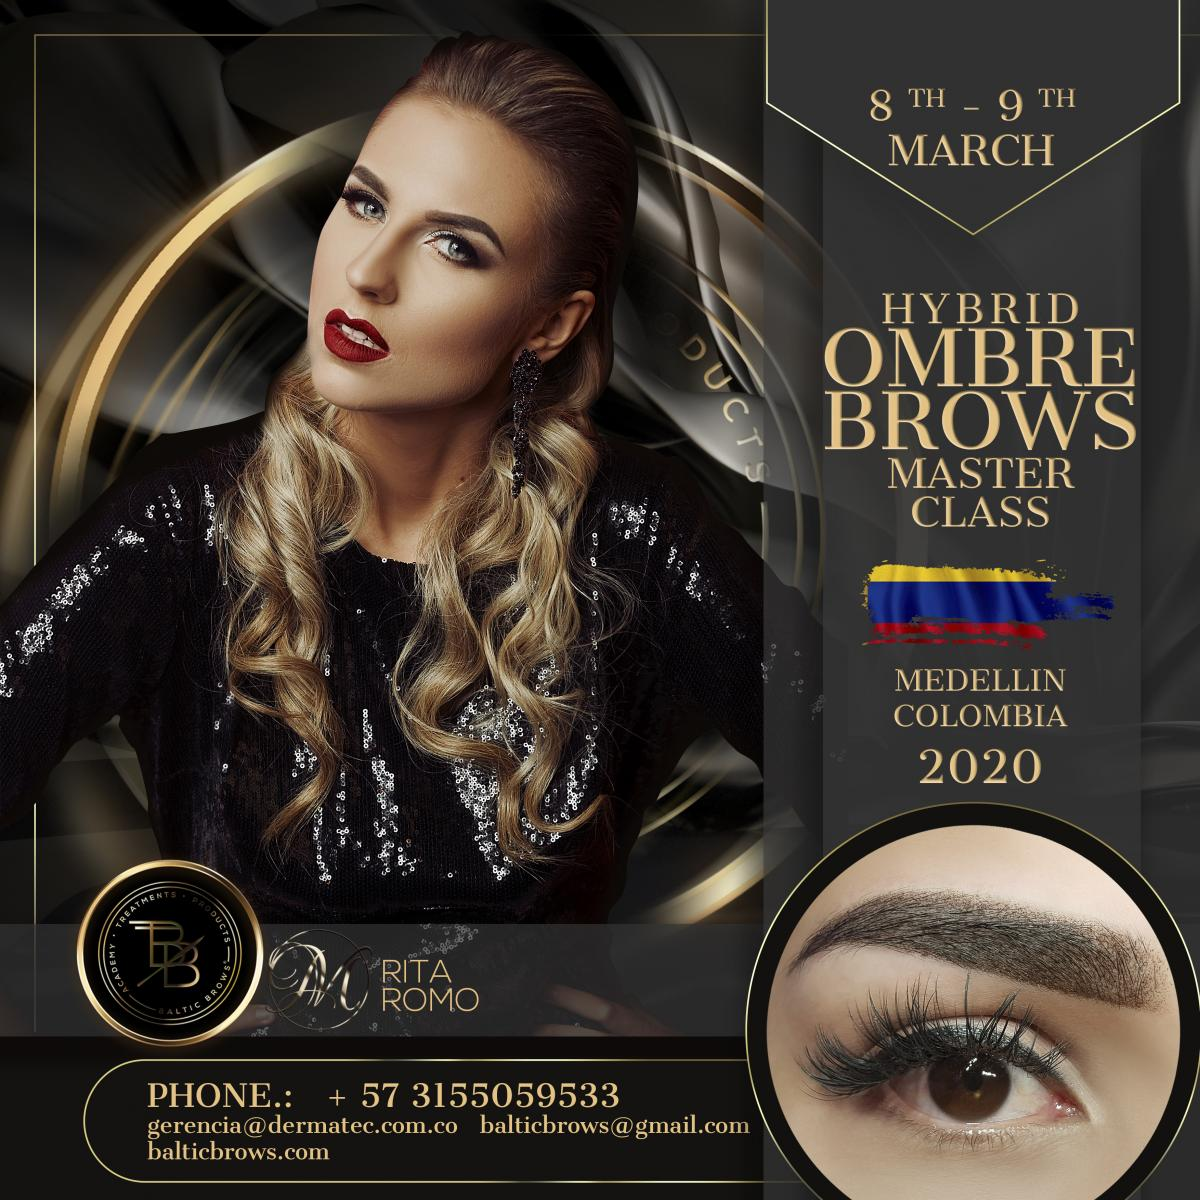 Ombre brows and strokes masterclass